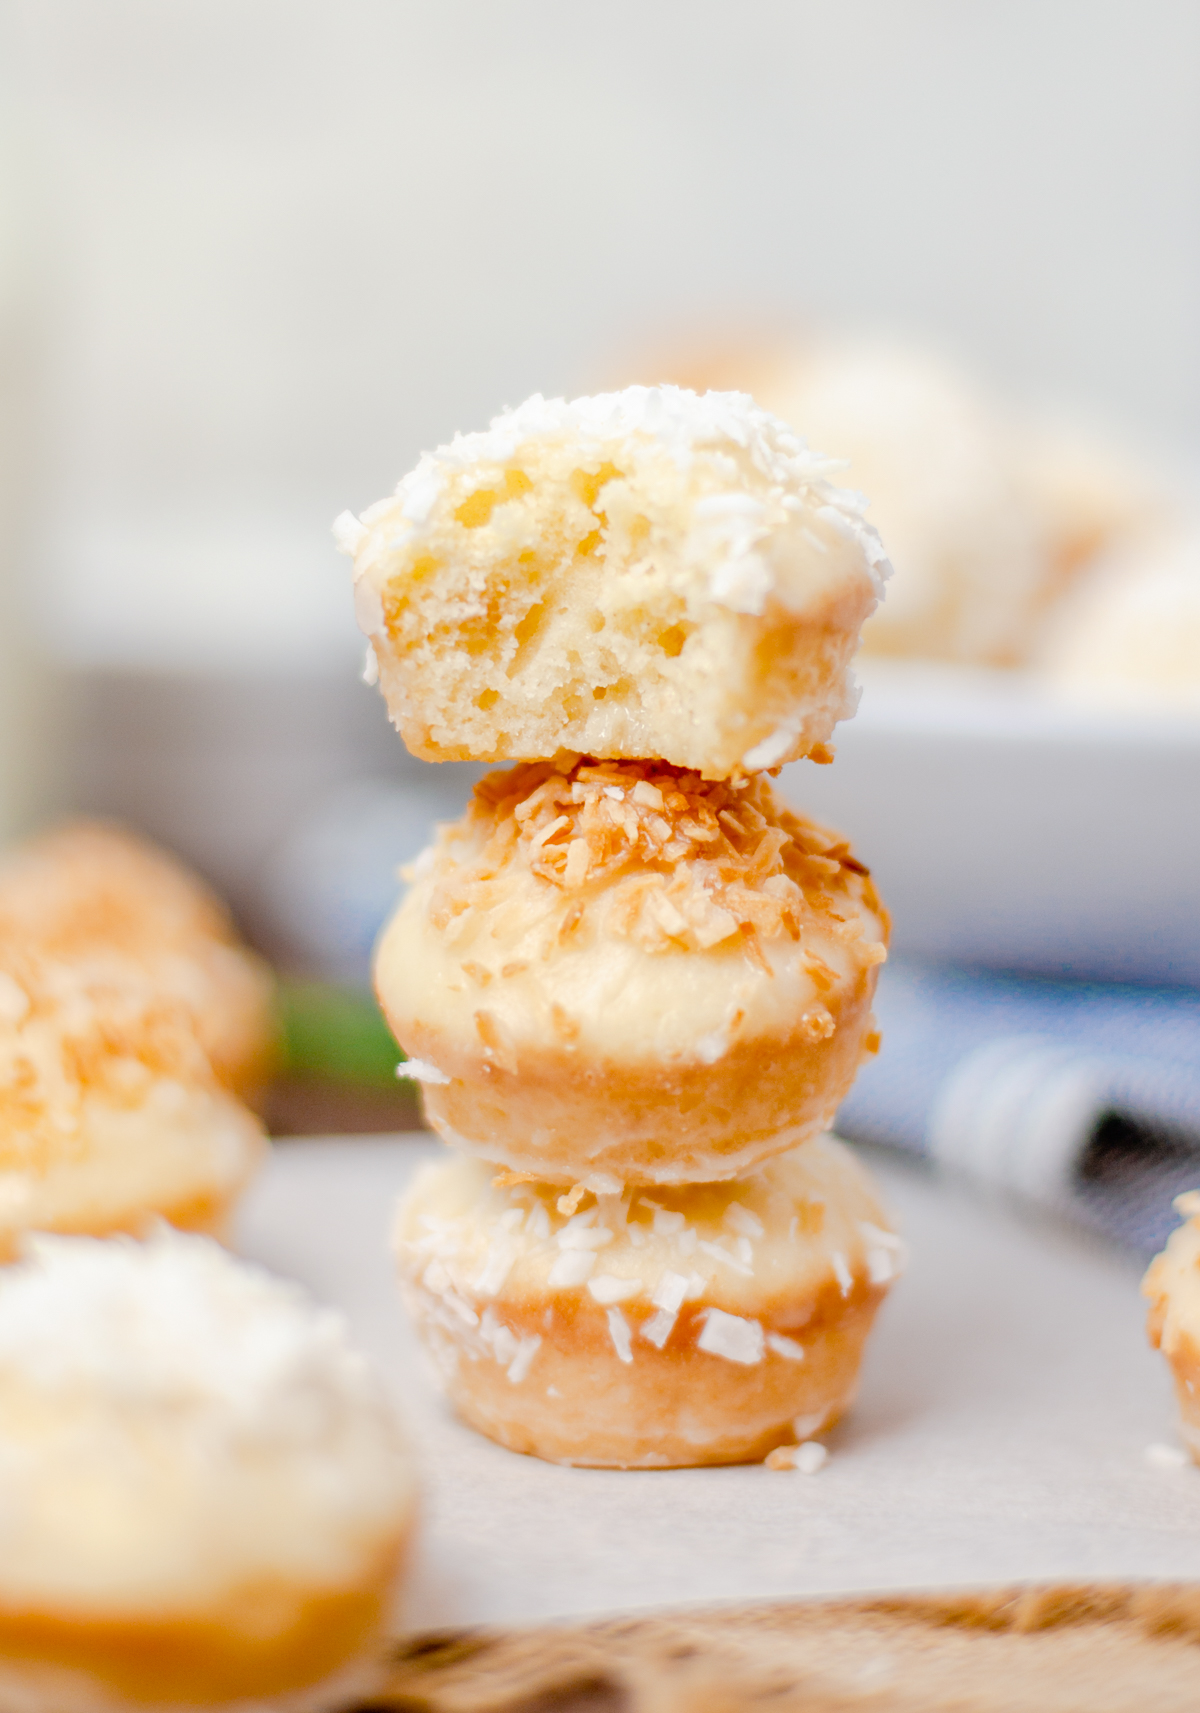 There stacked Coconut Donut Holes with bite taken out of top one